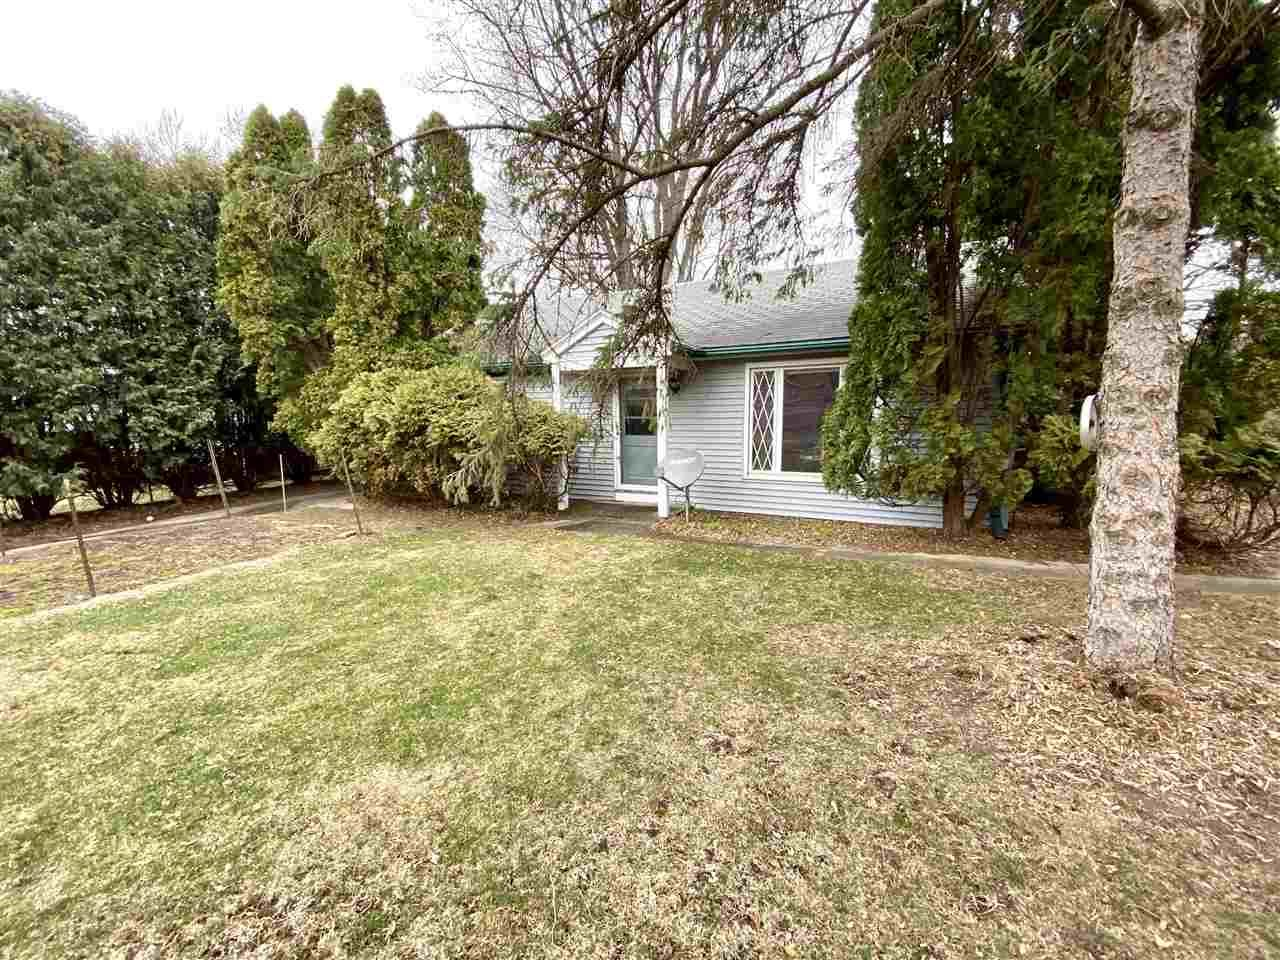 326 S Midvale Blvd, Madison, WI 53705 - MLS#: 1897177